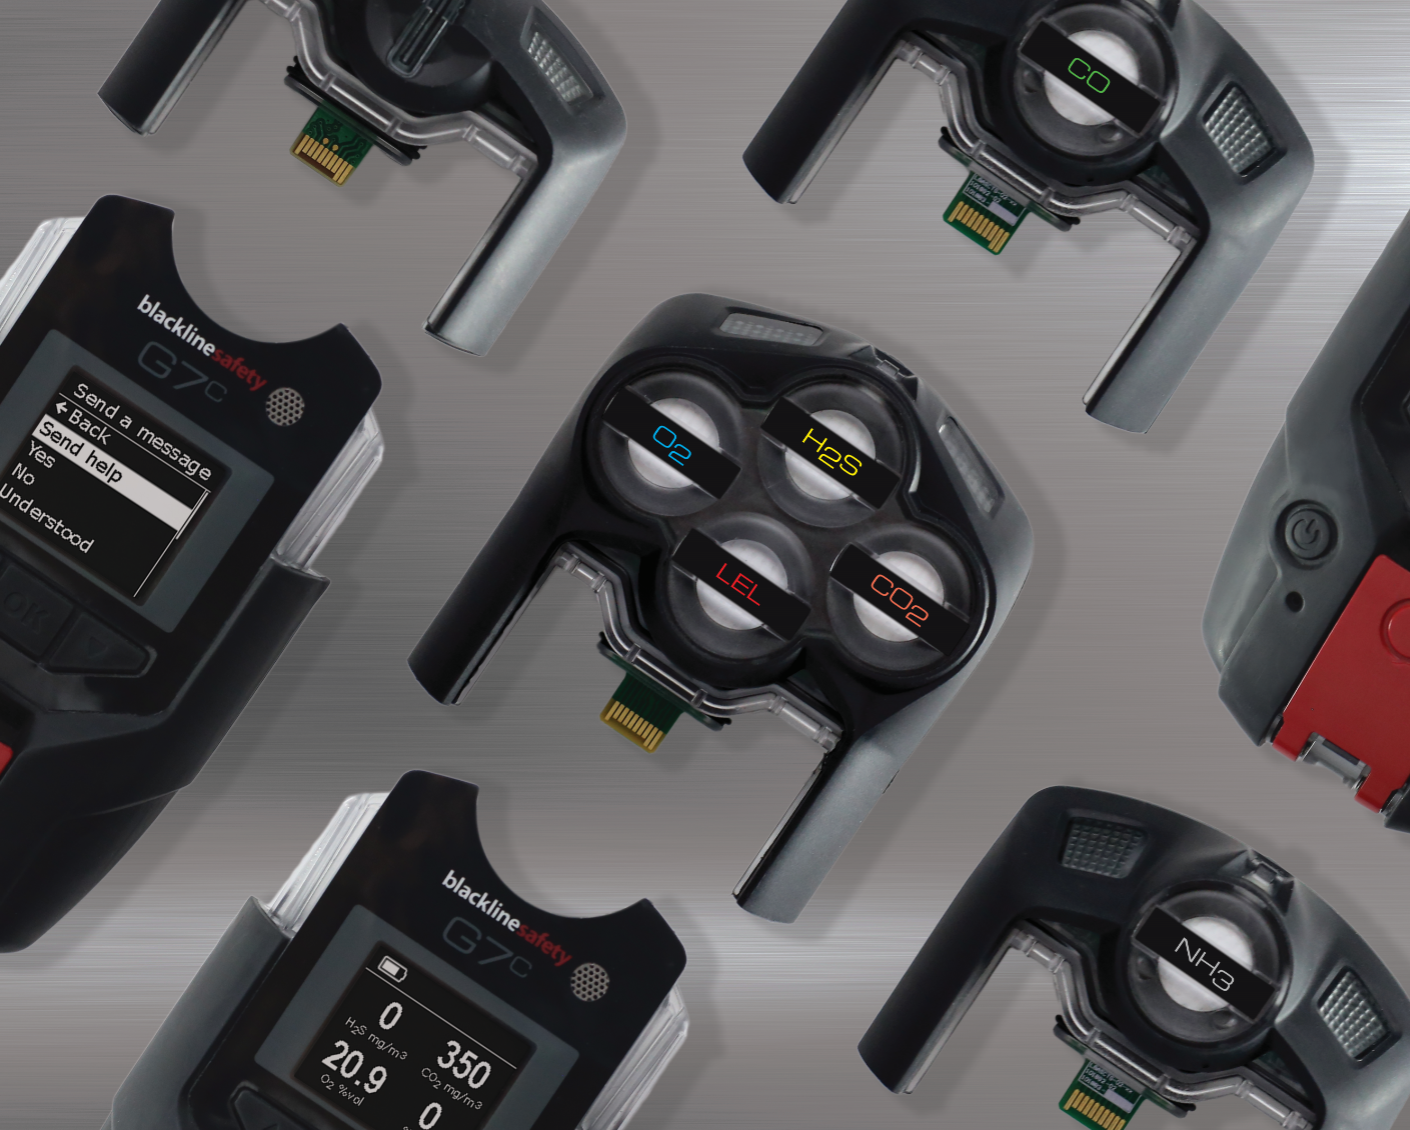 Blackline Safety Increases Worker Safety with Real-Time Monitoring and Gas Detection